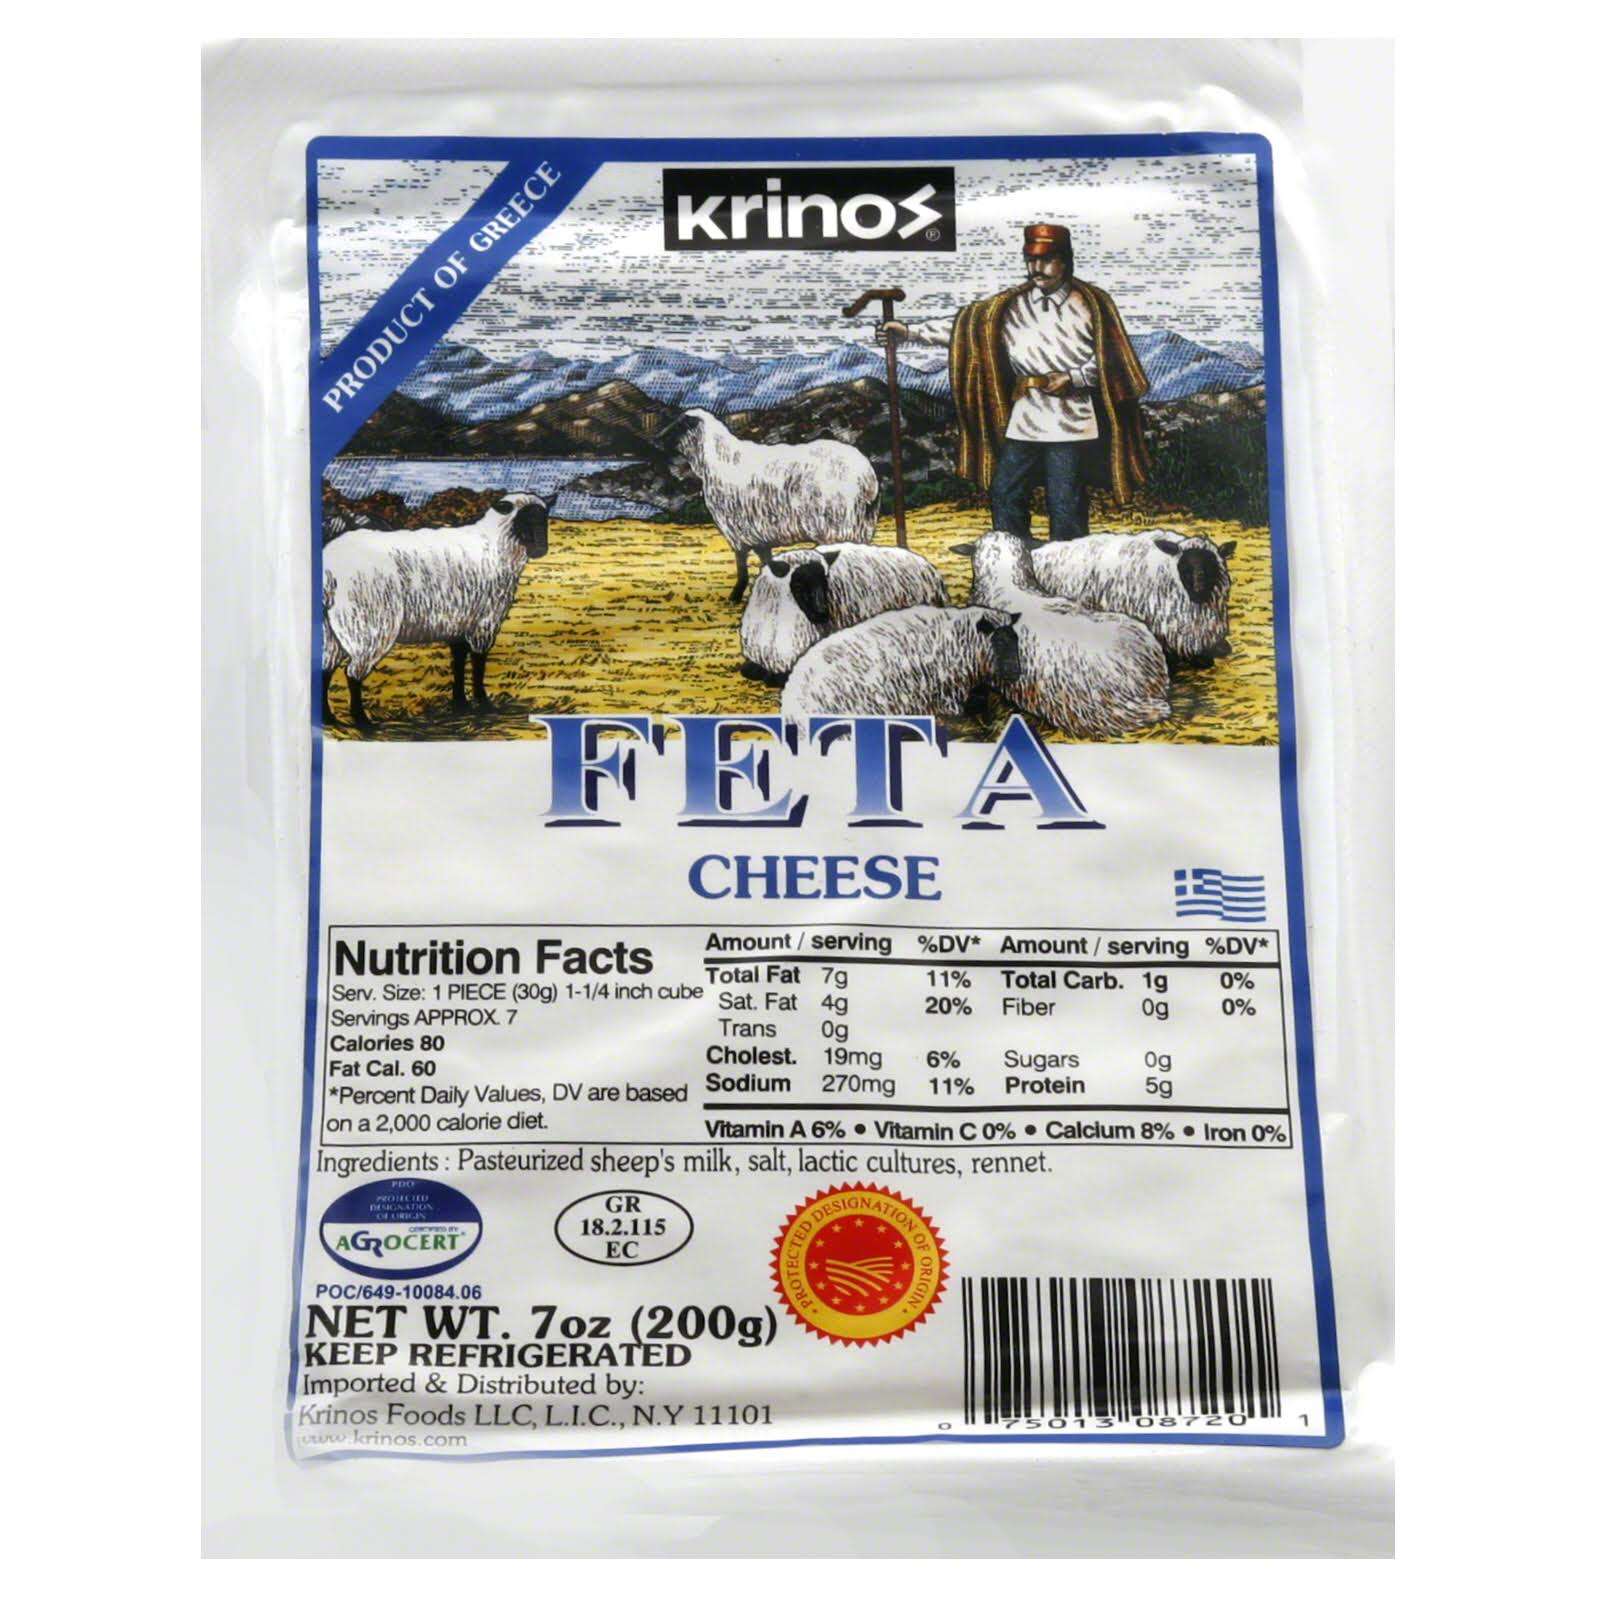 Krinos Feta Cheese - 7 oz